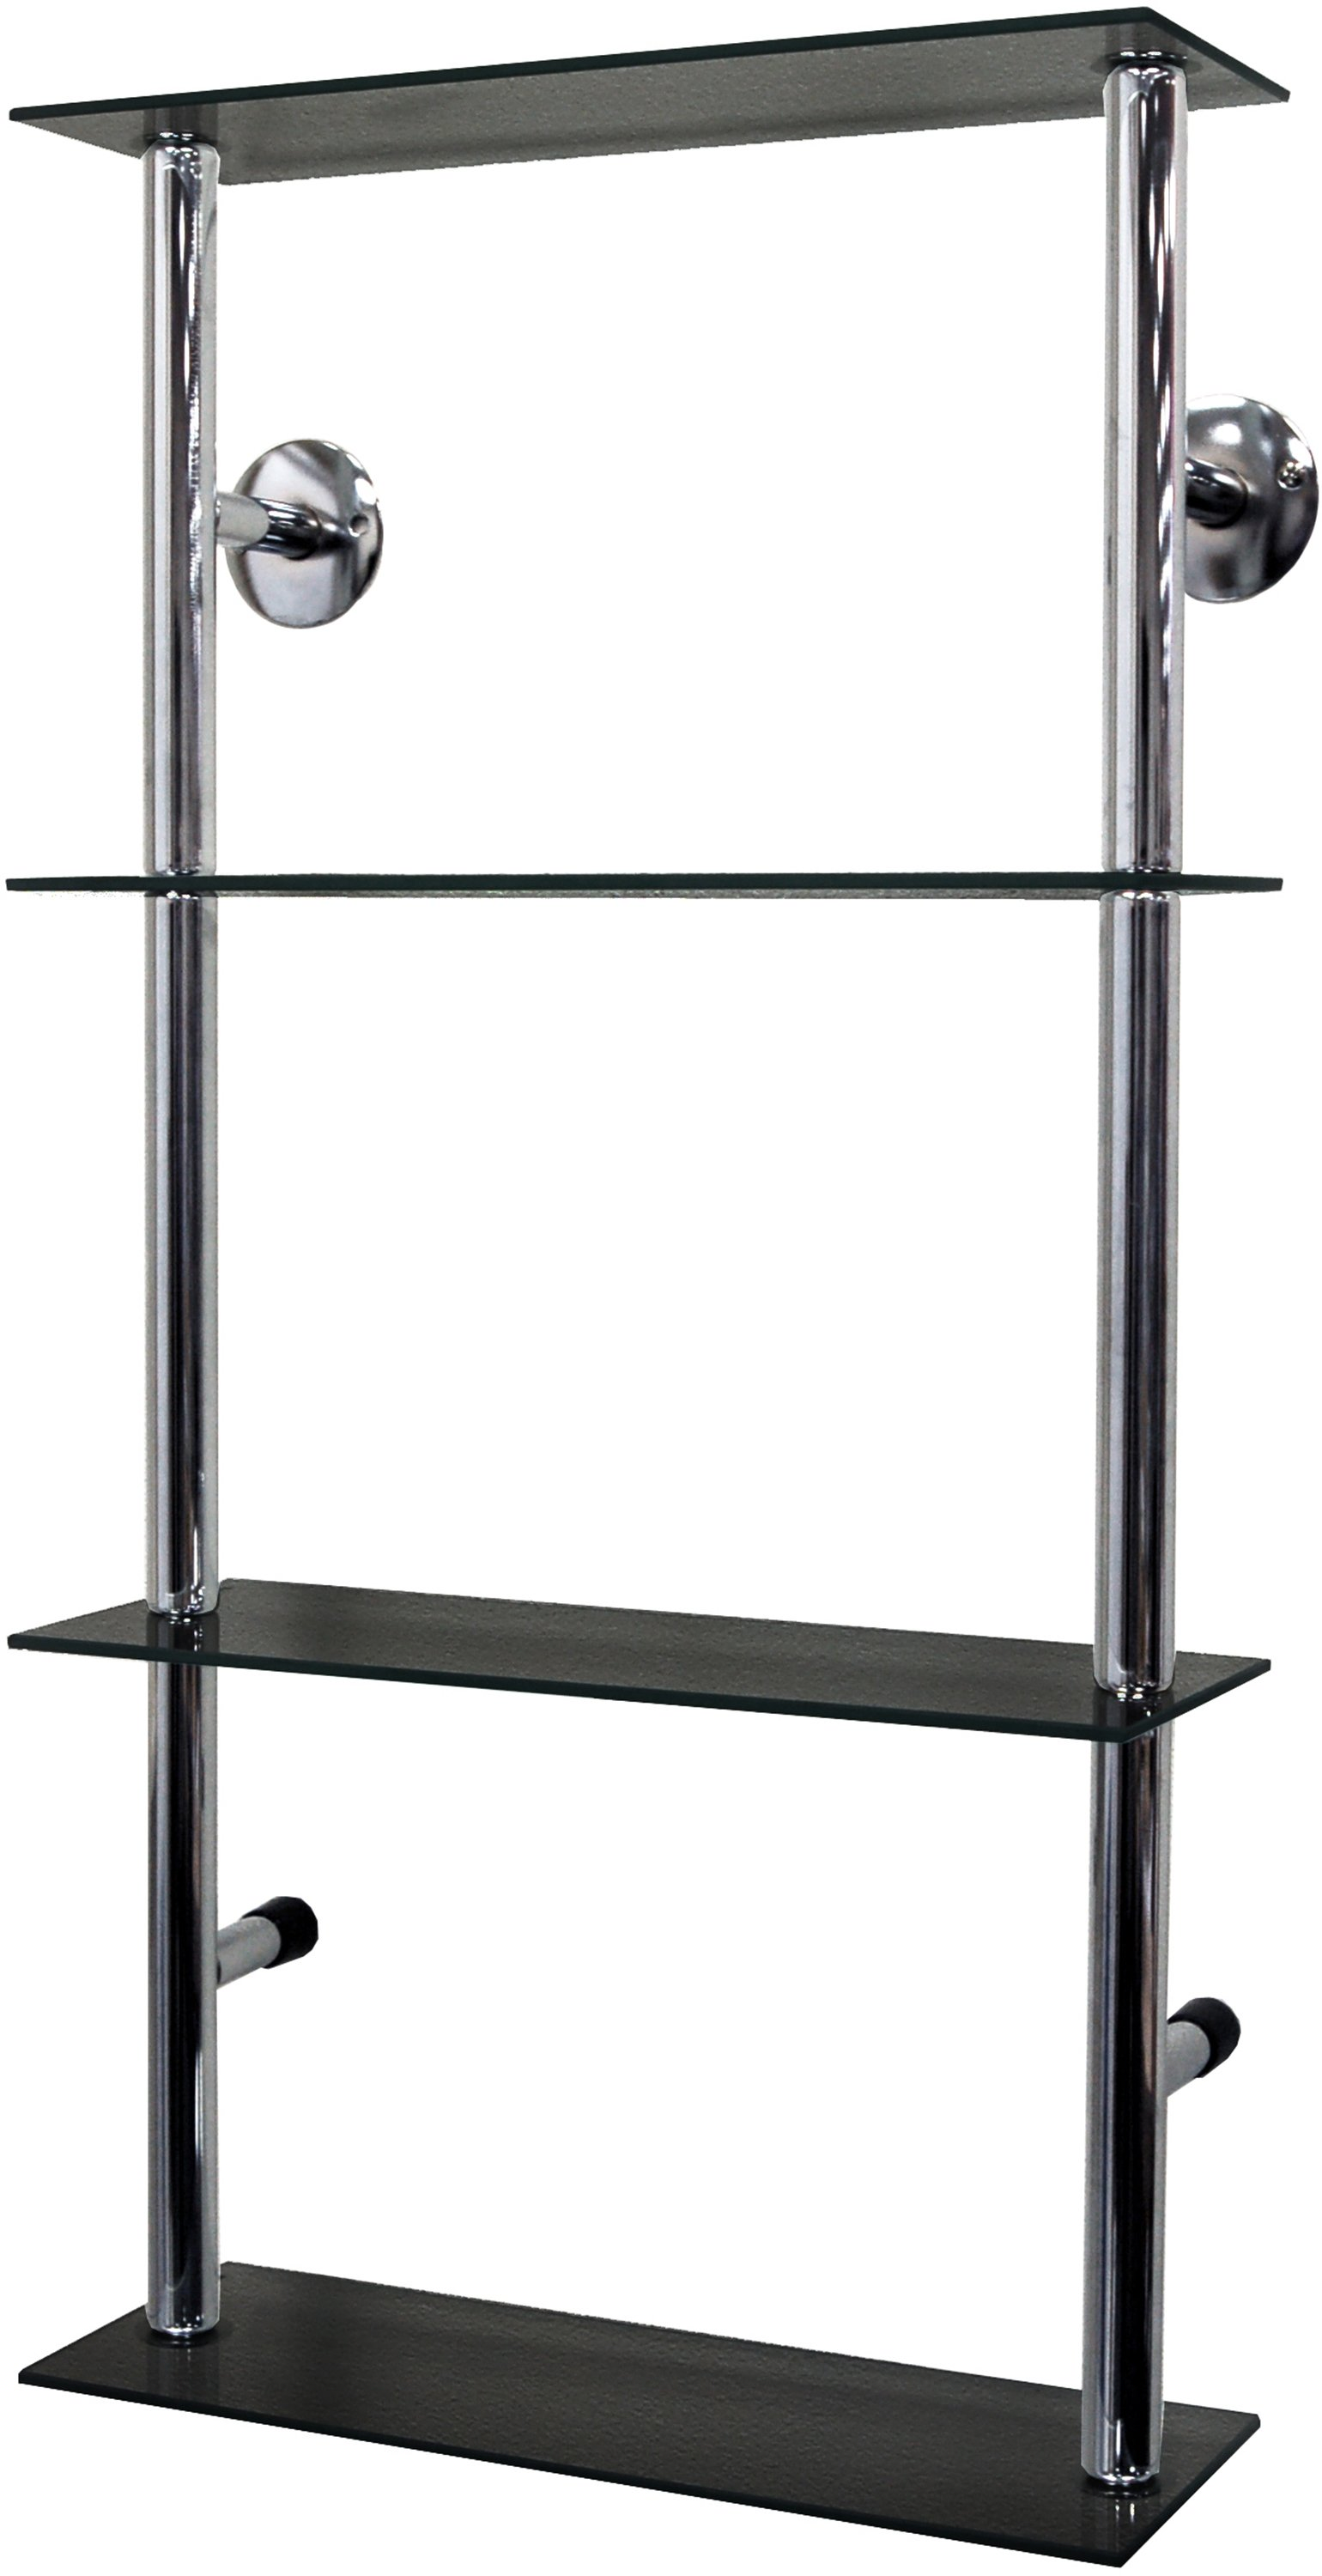 40cm 4 Glass Display Shelves - Black and Chrome